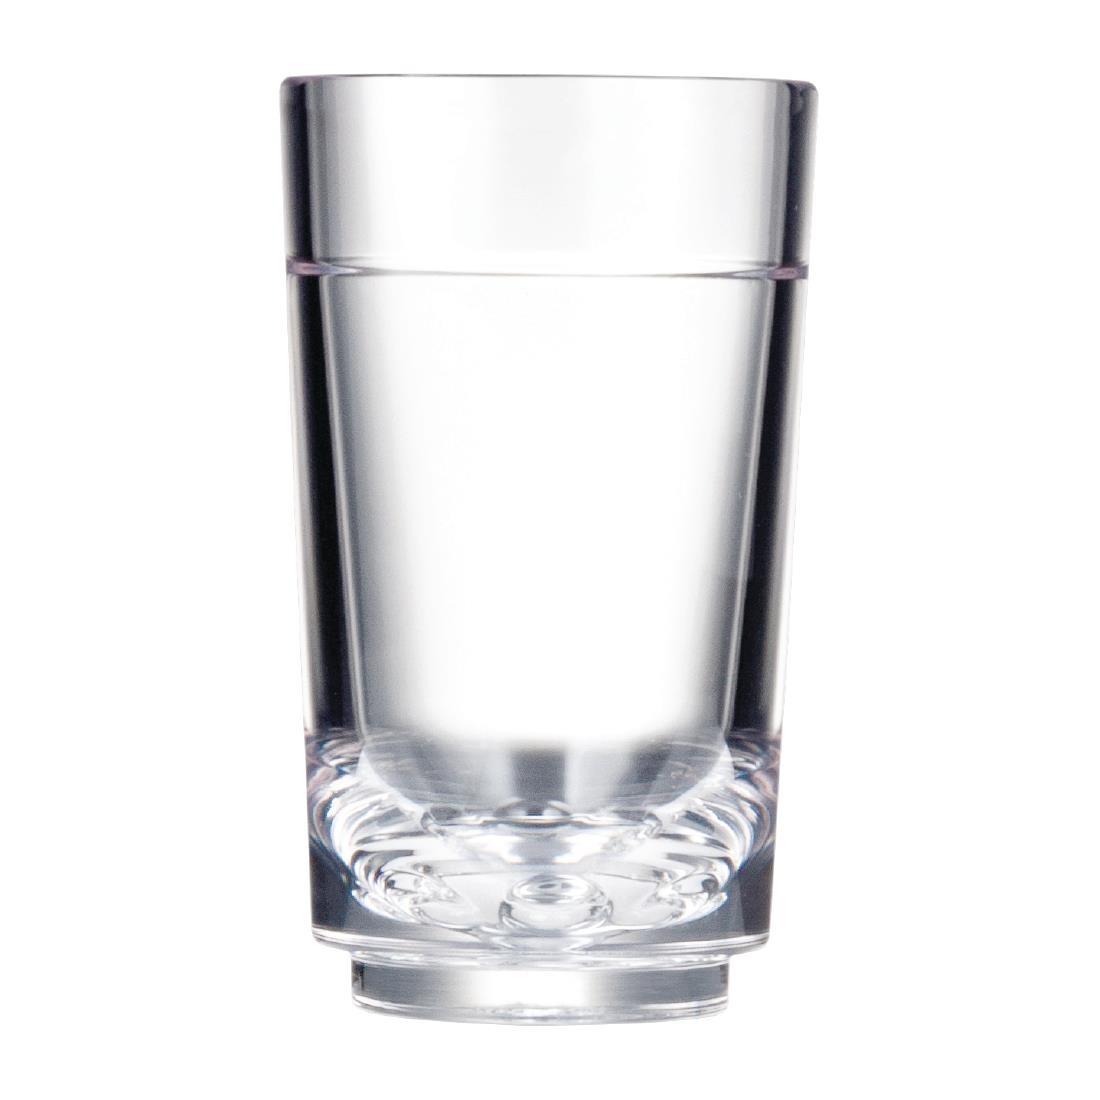 Image of Drinique Elite Tritan Shot Glasses Clear 60ml (Pack of 24) Pack of 24